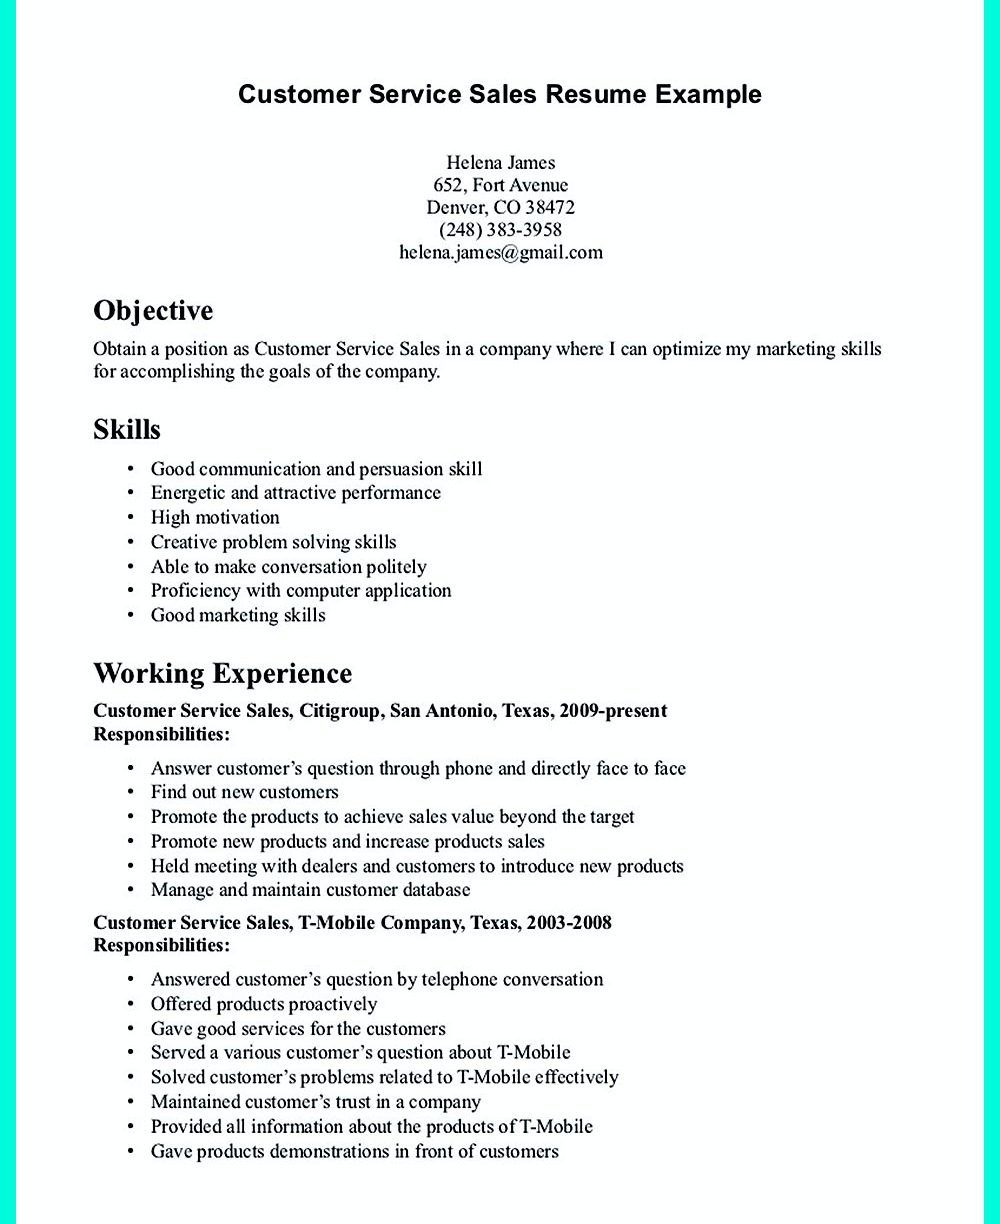 23 Retail Manager Resume Examples in 2020 Manager resume